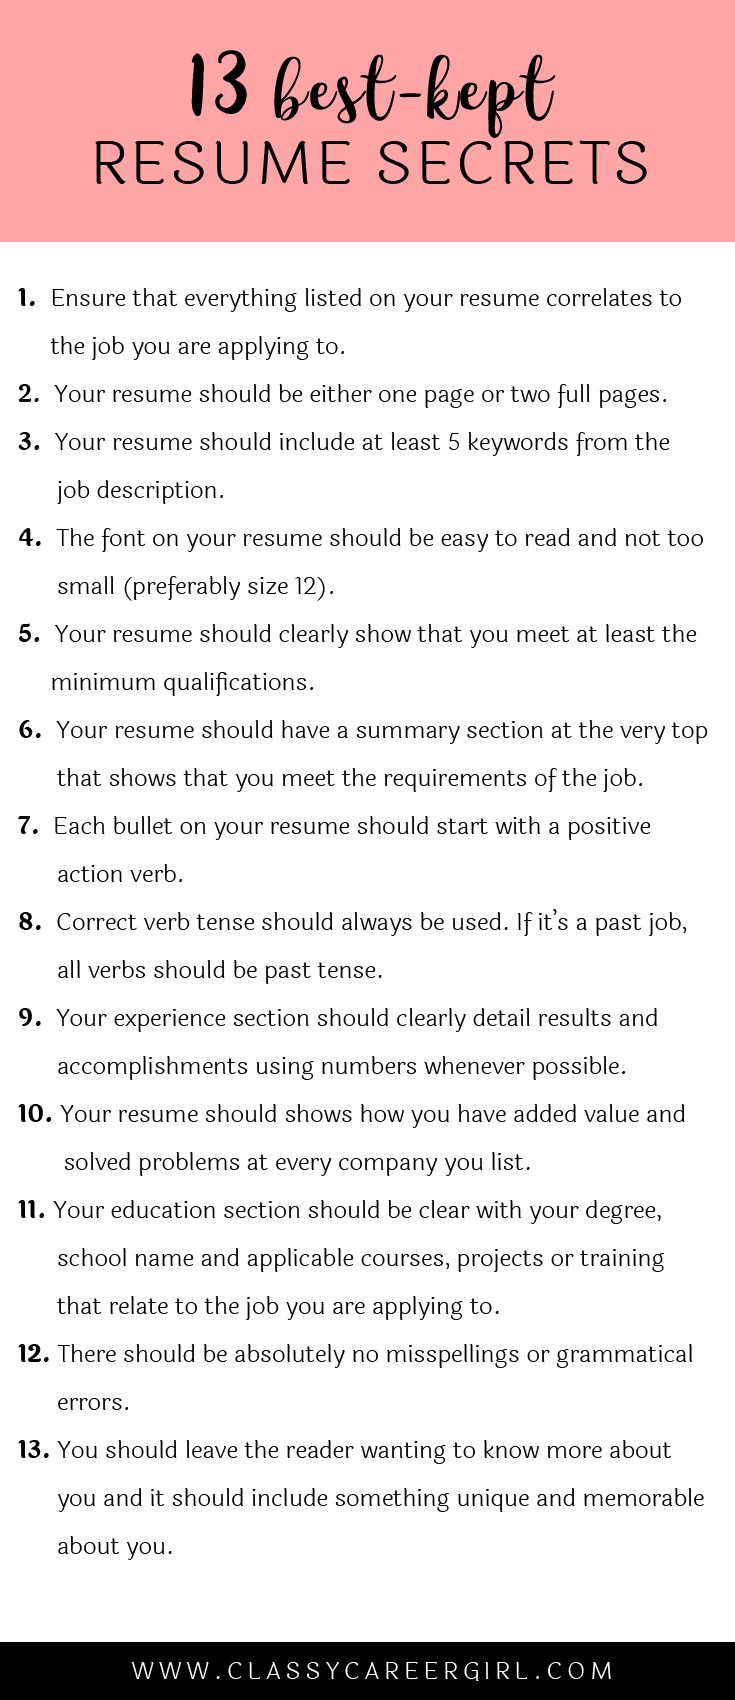 Opposenewapstandardsus  Winning  Ideas About Resume On Pinterest  Cv Format Resume Cv And  With Fascinating Some Hiring Managers Will Toss Your Resume Out If You Dont Know These  With Breathtaking Resume Templates Microsoft Word  Also Summary Part Of Resume In Addition Usa Jobs Resume Sample And Graduate Resume Template As Well As Words To Describe Yourself On Resume Additionally Civil Engineering Resumes From Pinterestcom With Opposenewapstandardsus  Fascinating  Ideas About Resume On Pinterest  Cv Format Resume Cv And  With Breathtaking Some Hiring Managers Will Toss Your Resume Out If You Dont Know These  And Winning Resume Templates Microsoft Word  Also Summary Part Of Resume In Addition Usa Jobs Resume Sample From Pinterestcom